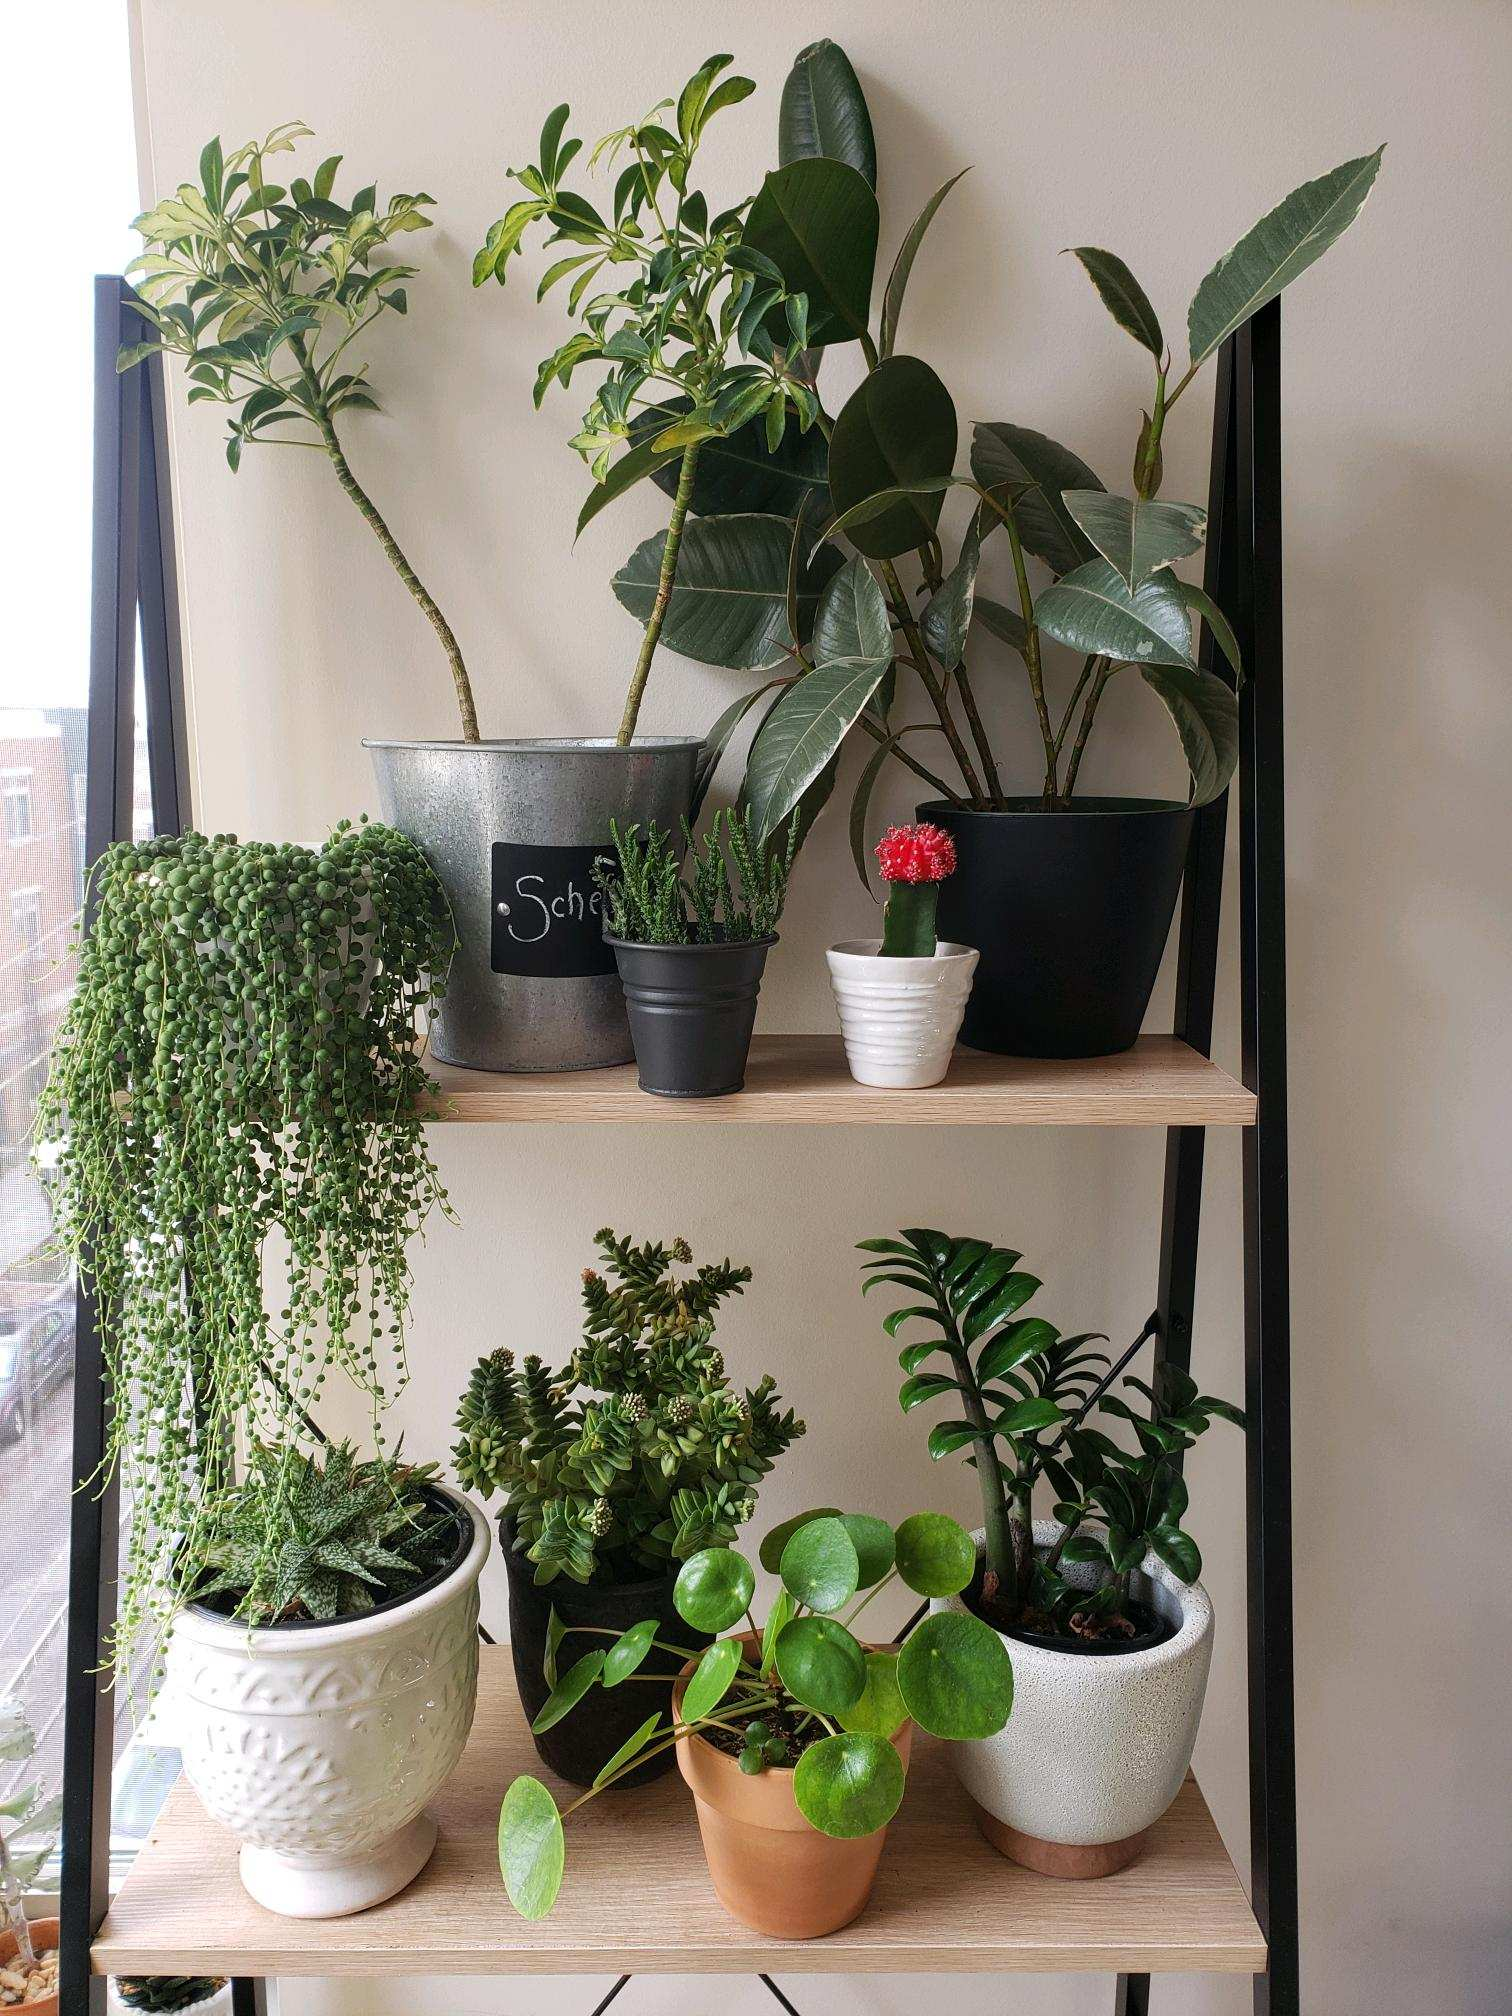 How to move with plants in NYC